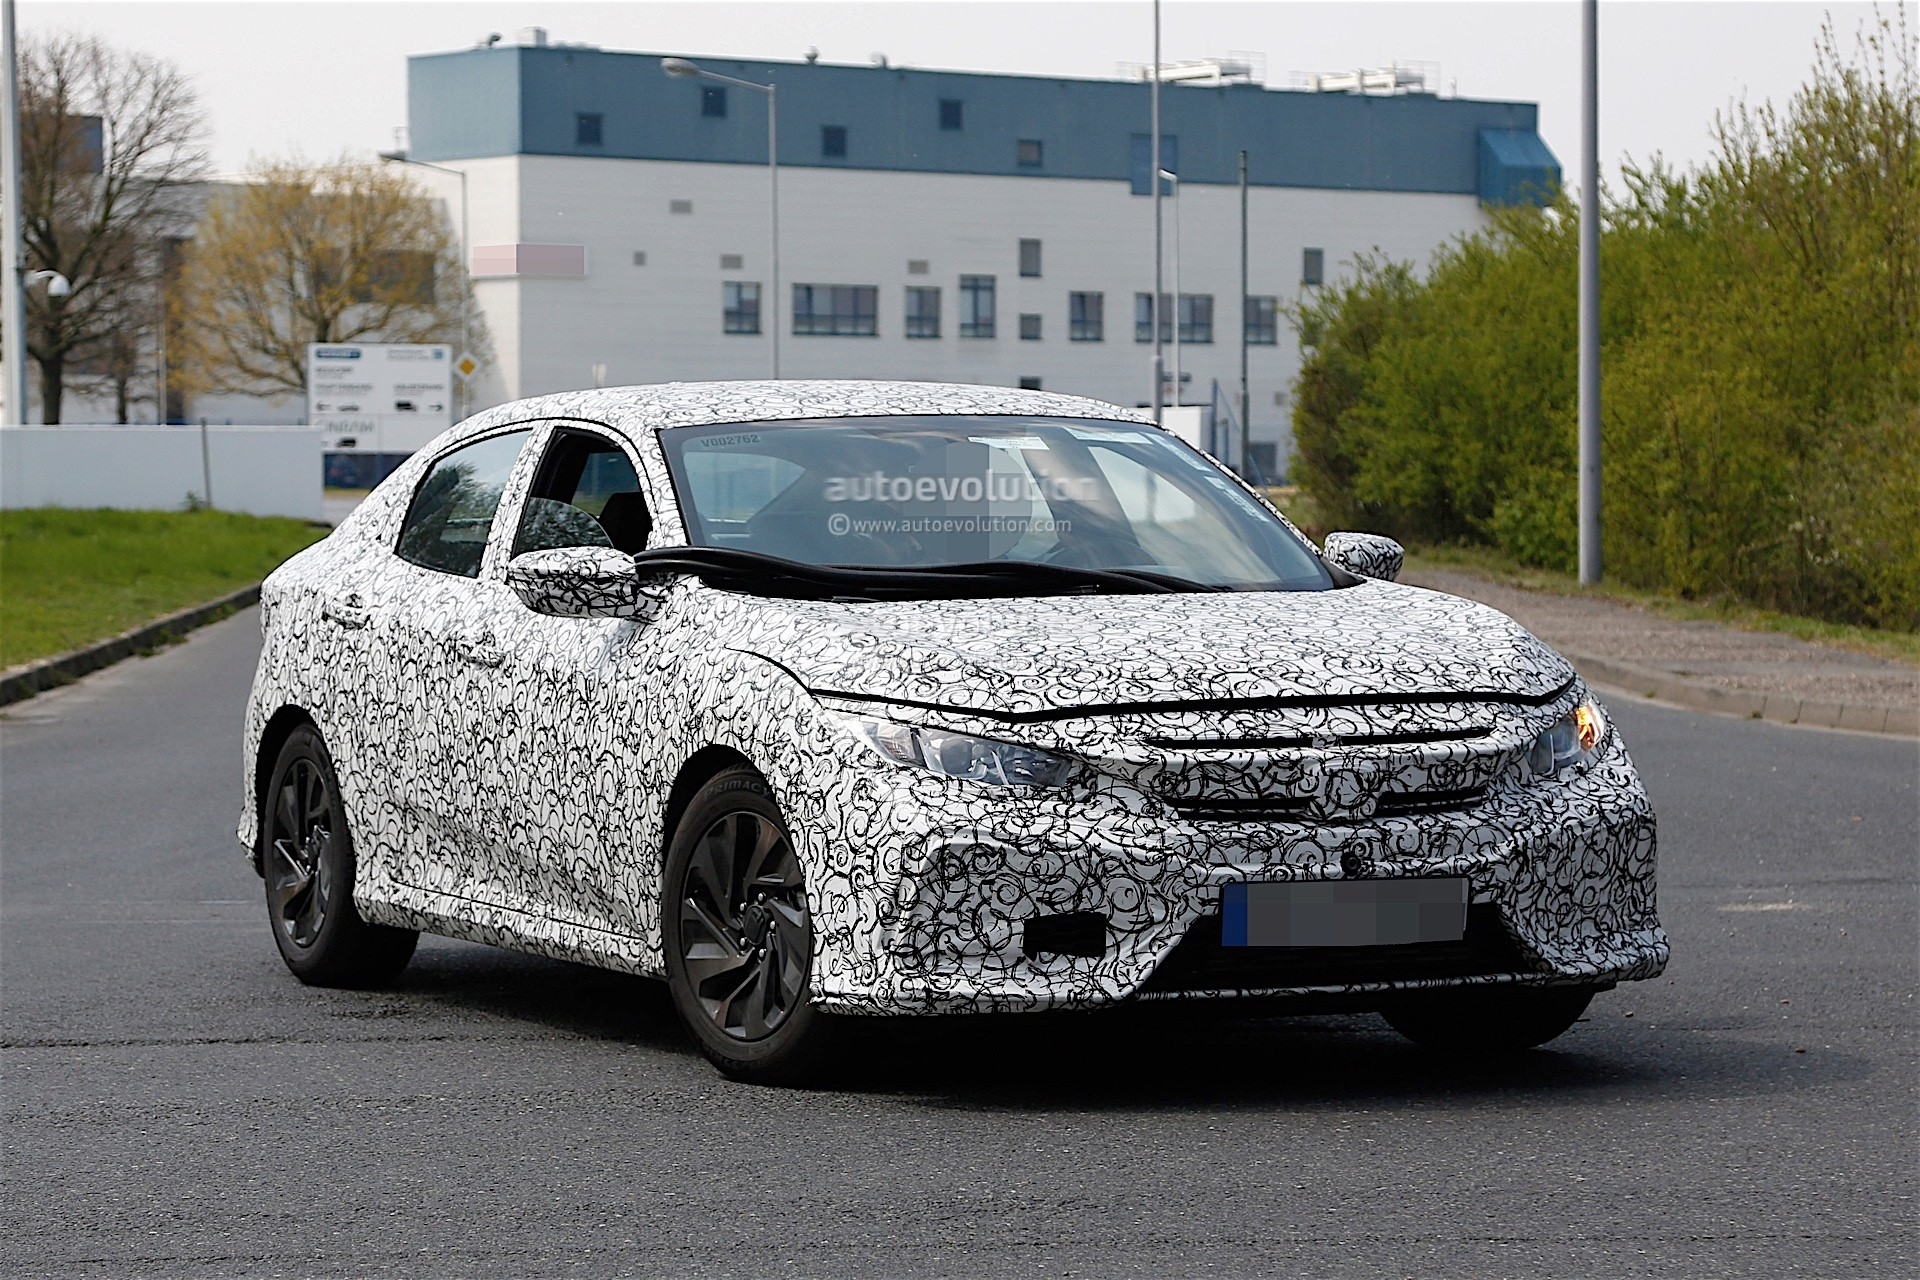 2017 Honda Civic Spyshots Reveal Interior Design - autoevolution